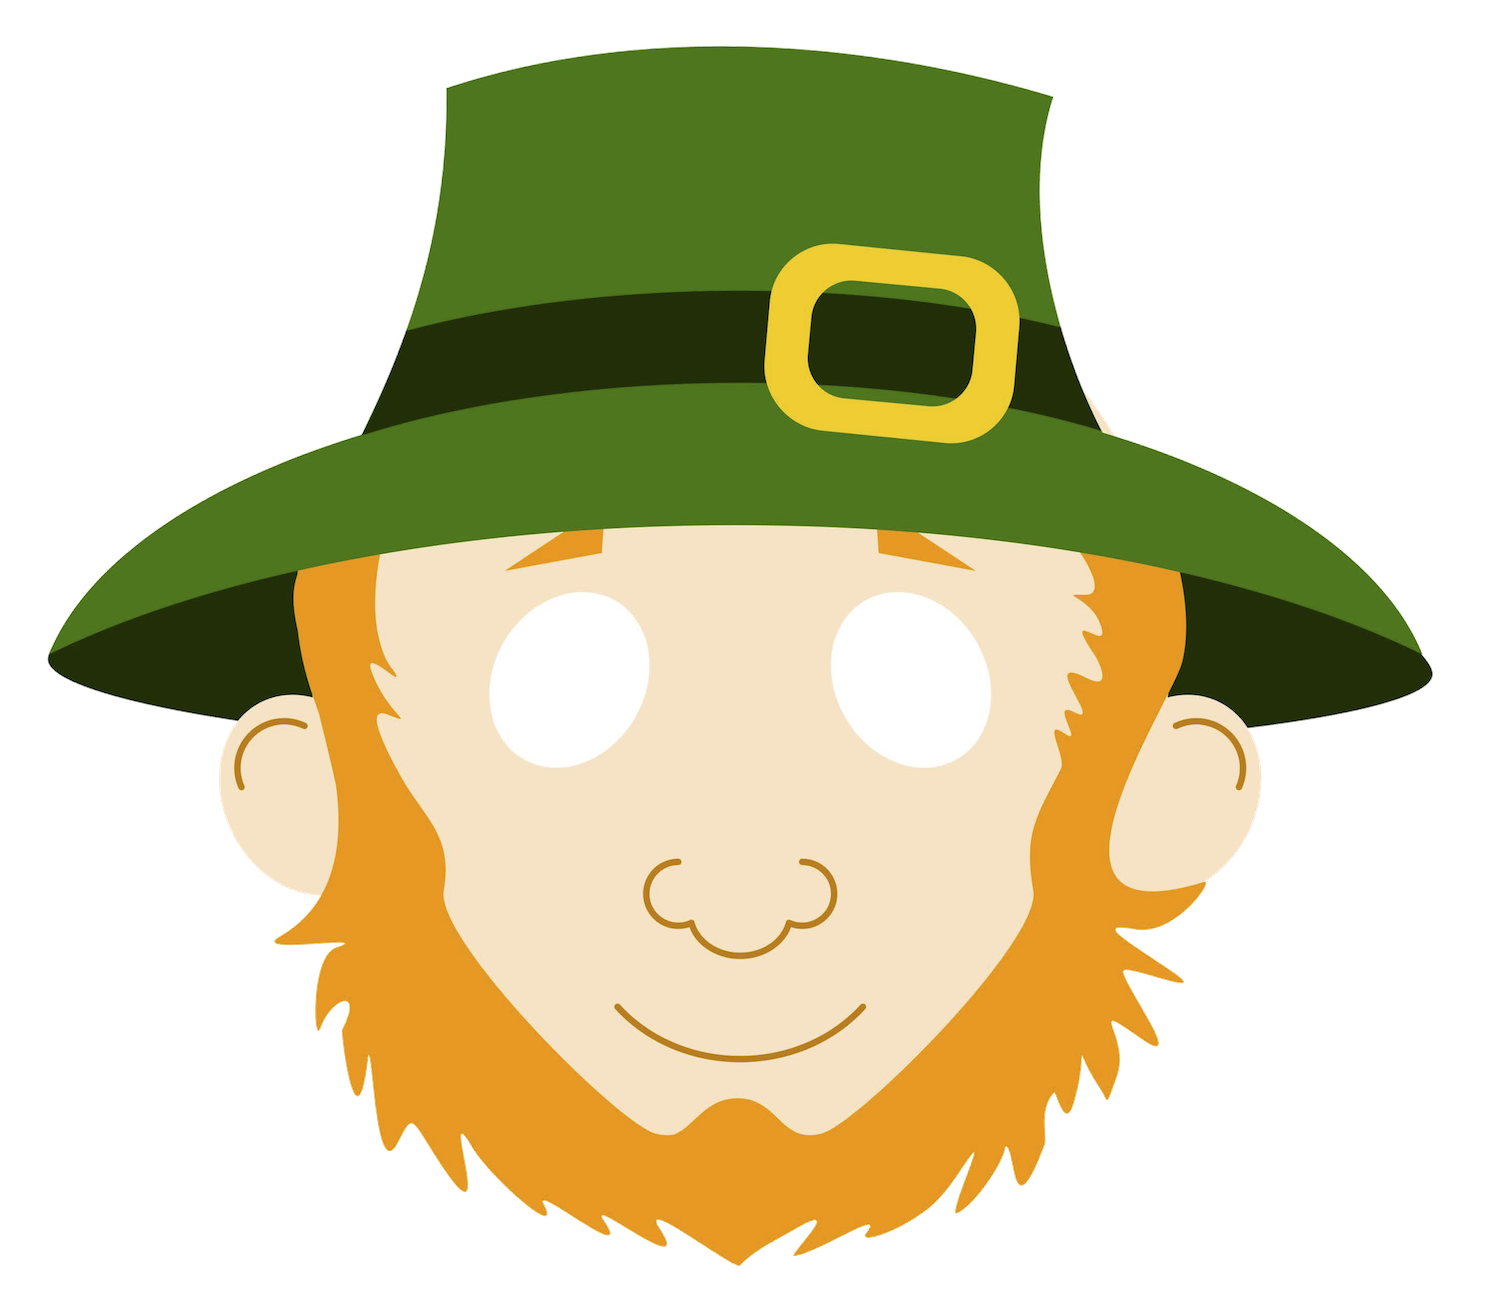 Leprechaun Mask - Also comes in black & white to color.